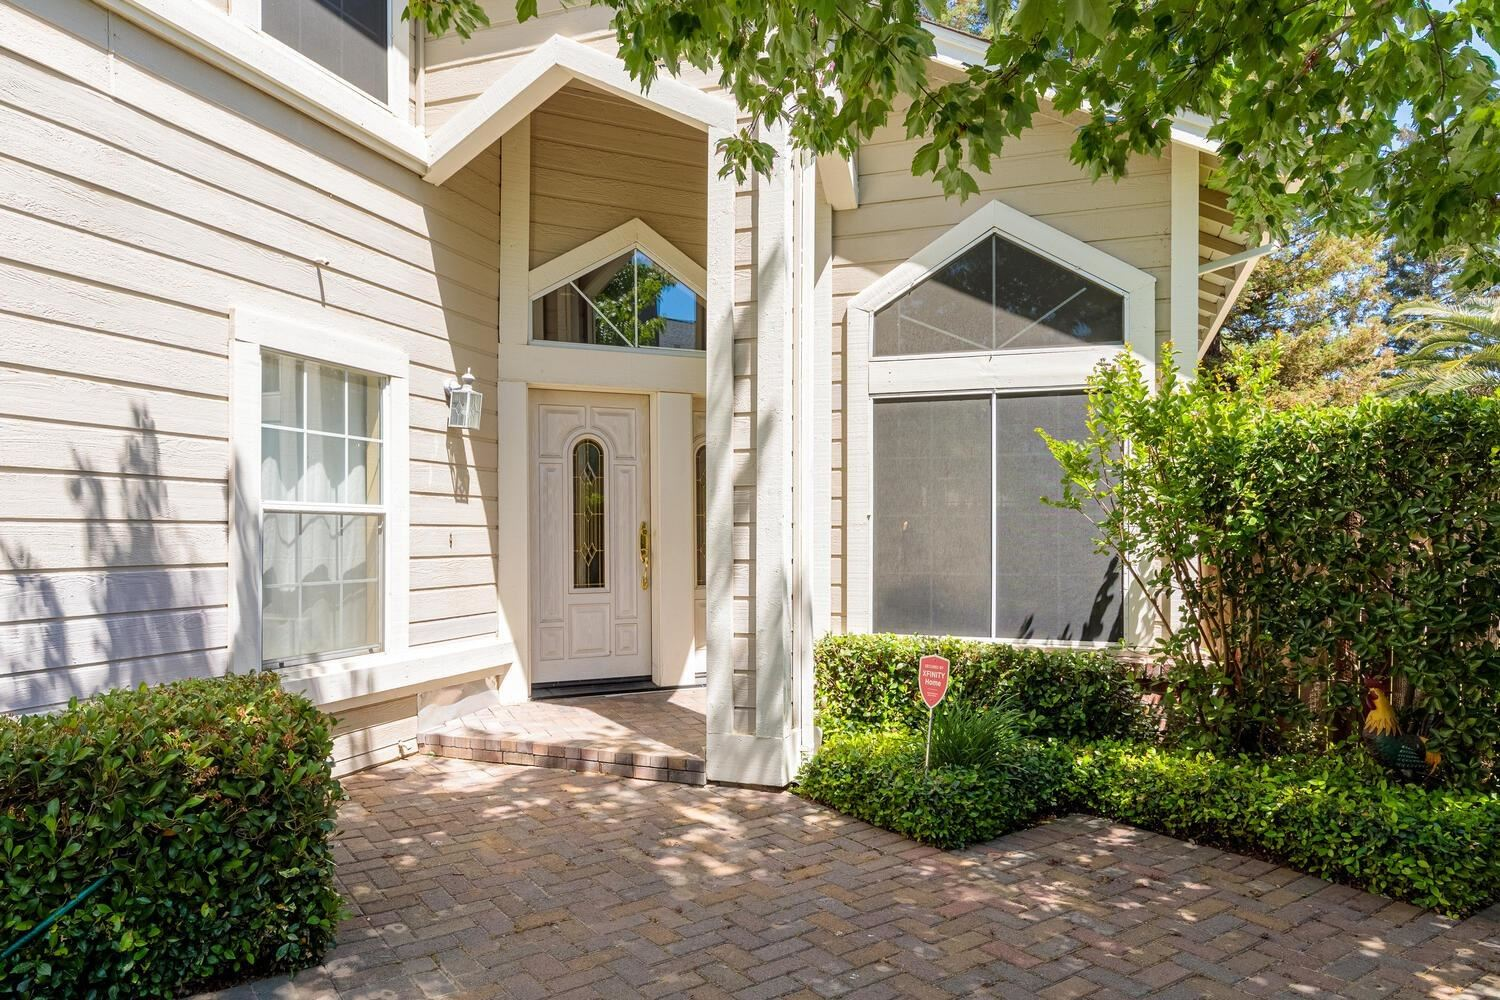 Photo of 8812 Dryden Court, Sacramento, CA 95828 (MLS # 221049625)